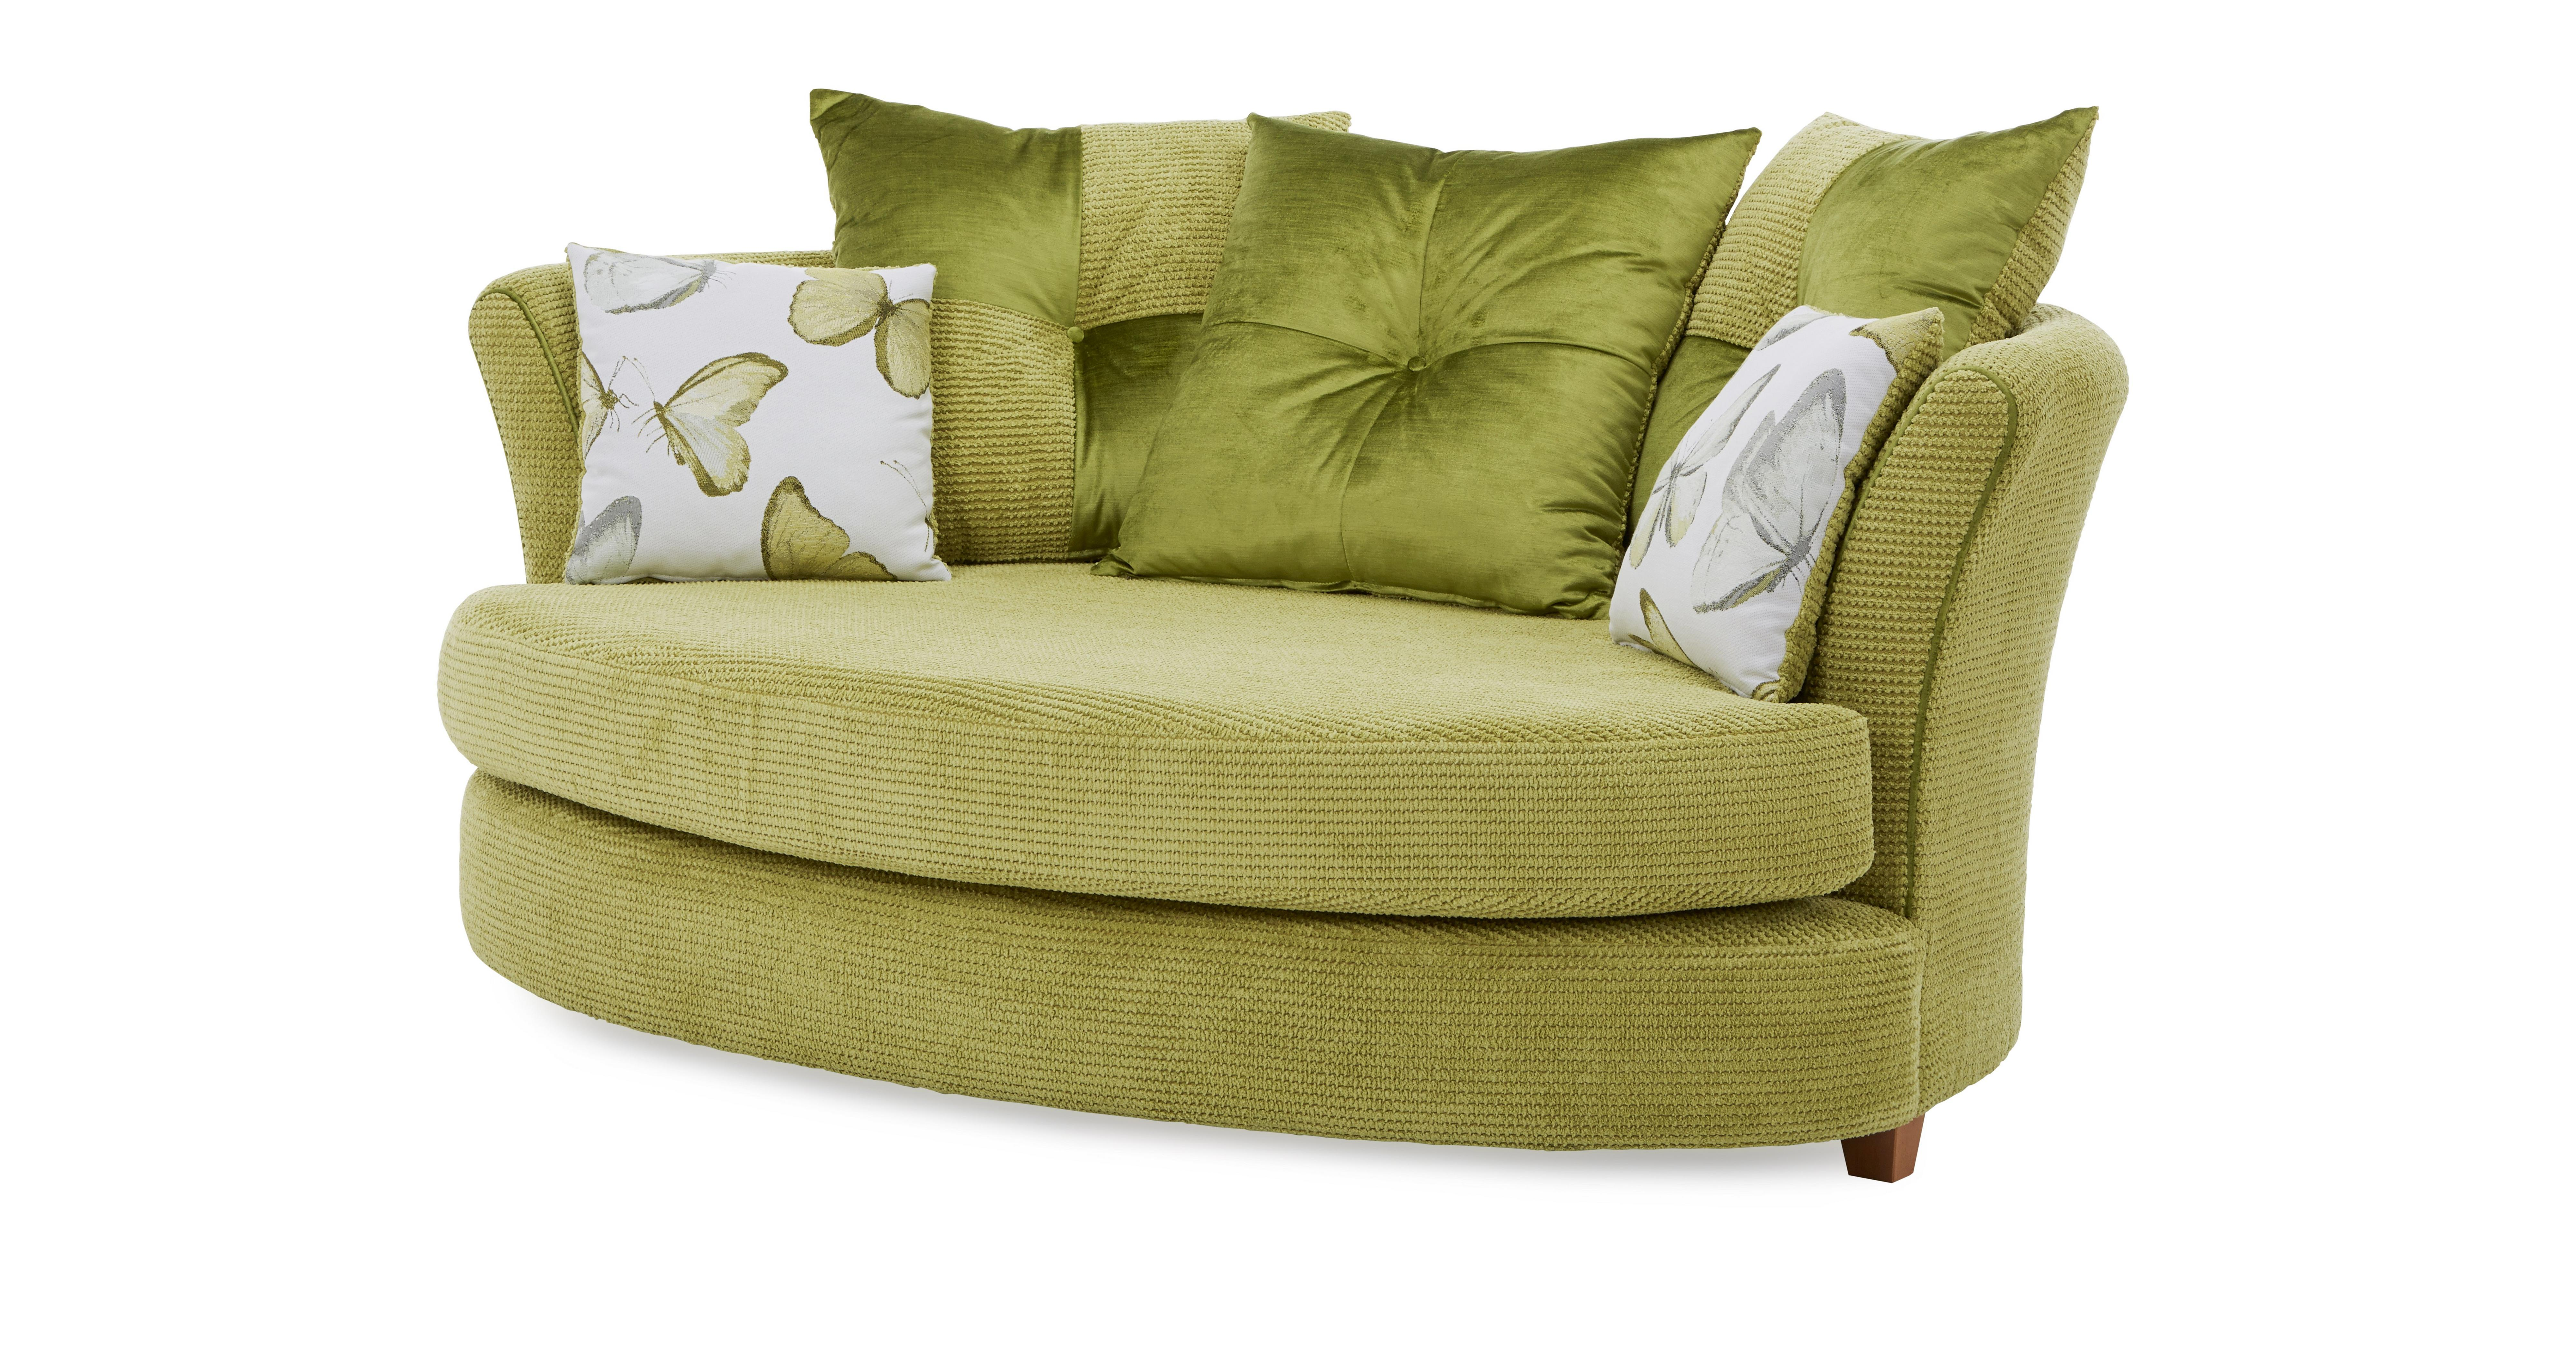 lime sofa chair larson grey dfs alegra green fabric cuddler and patterned